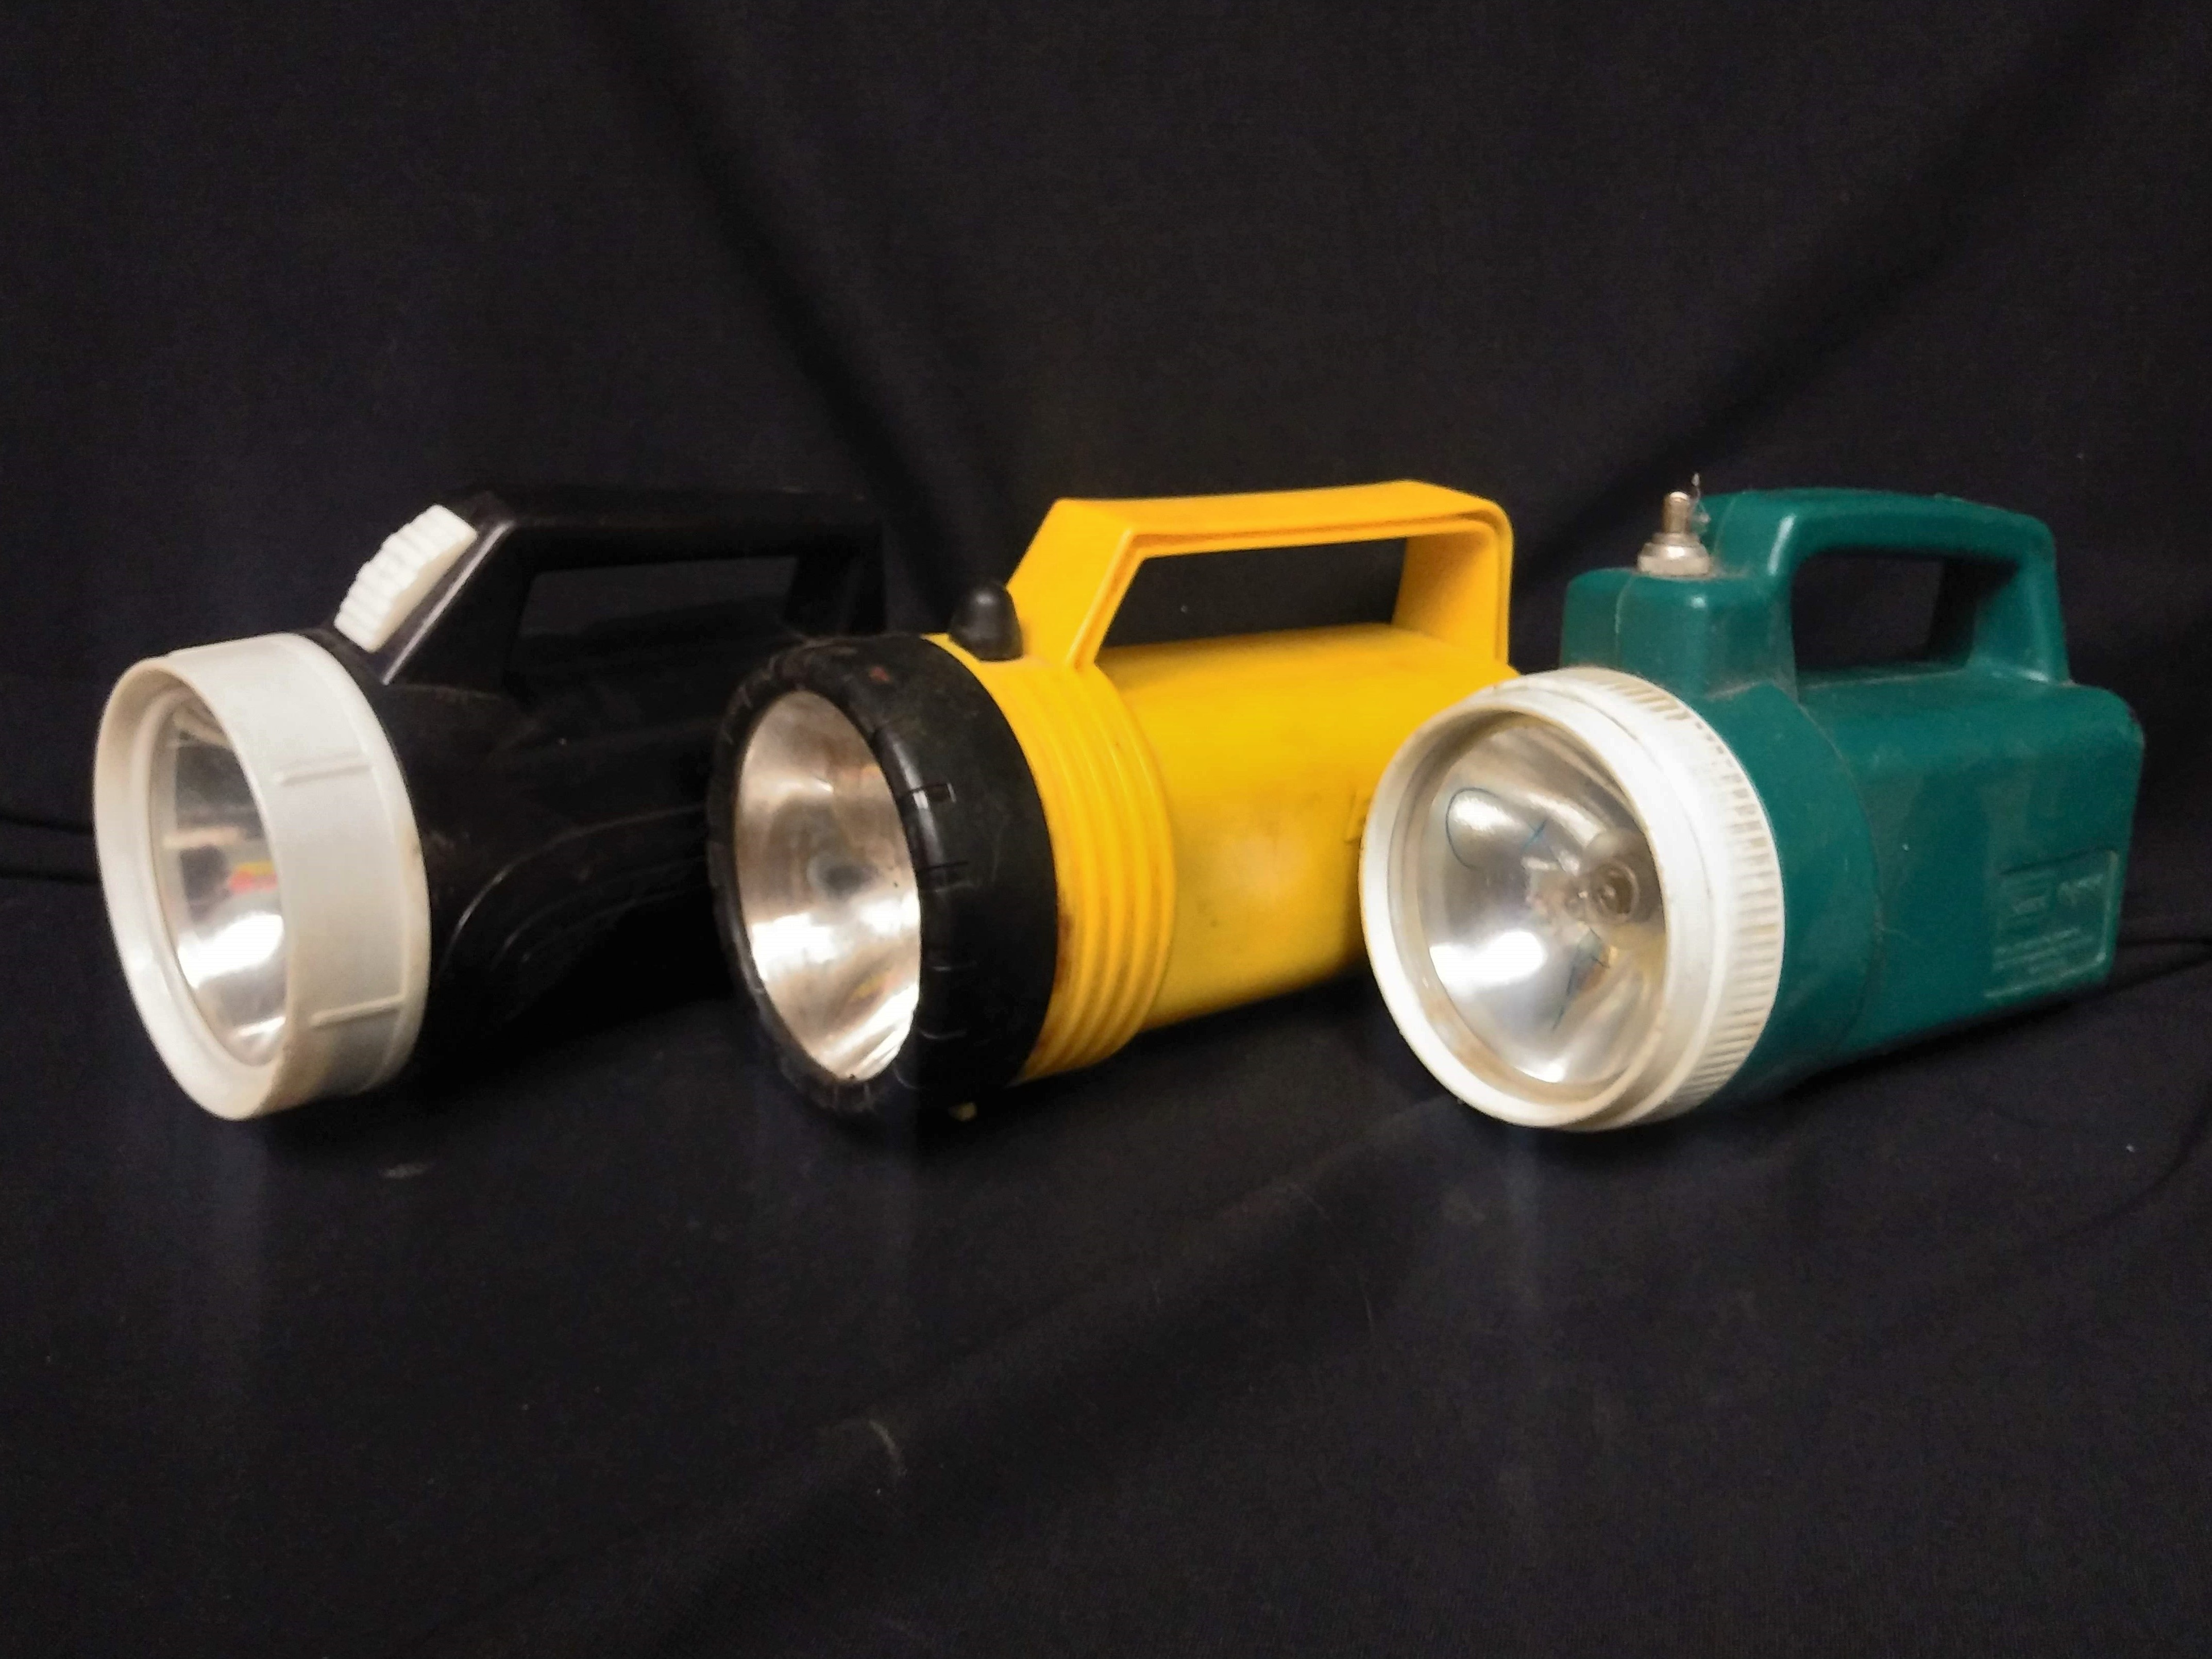 Floating Flashlights